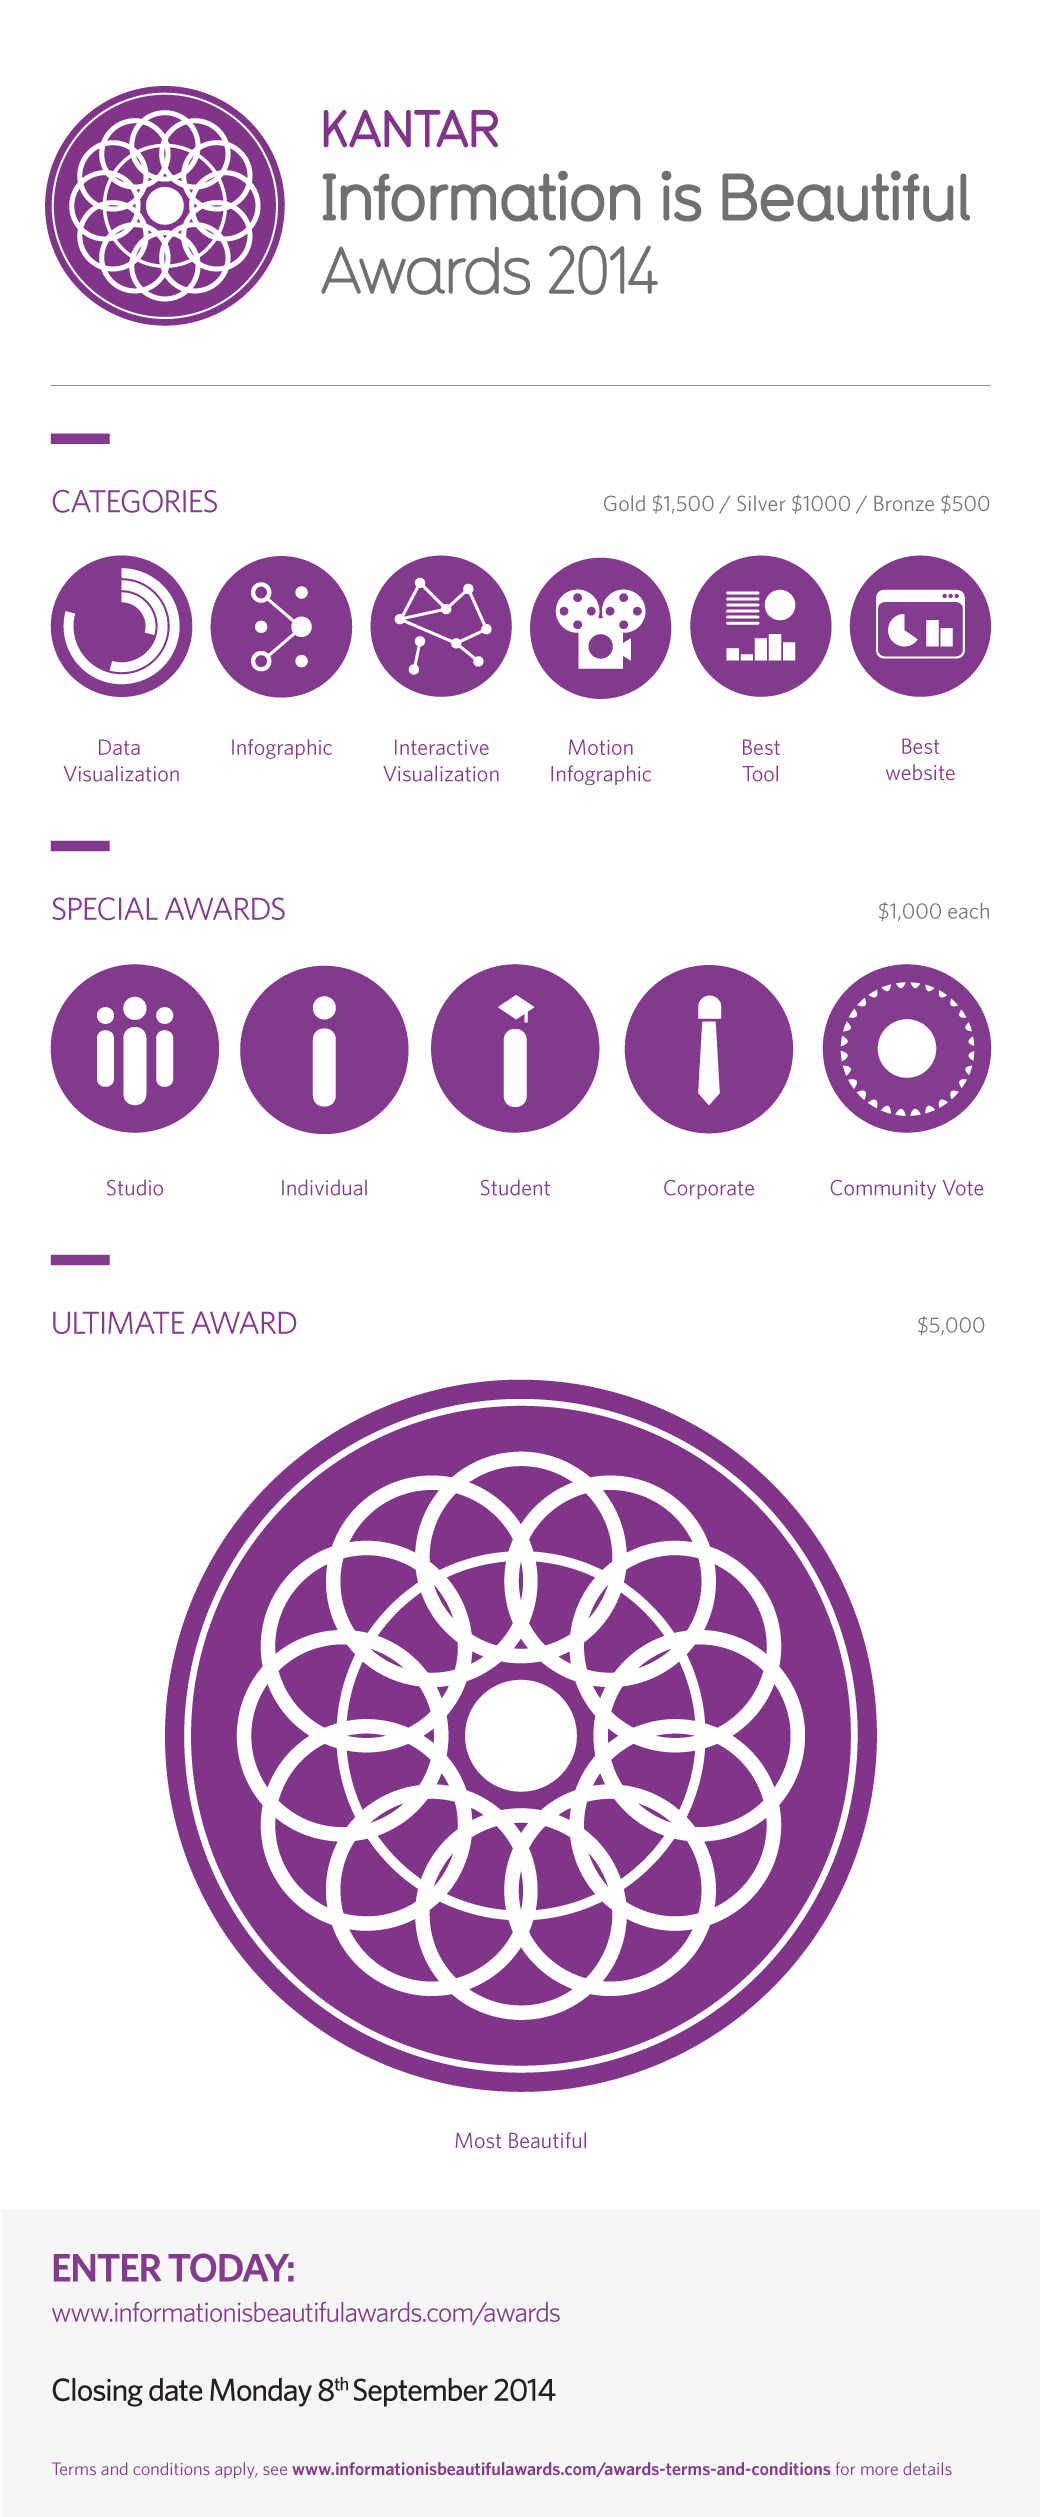 Information is Beautiful Awards 2014